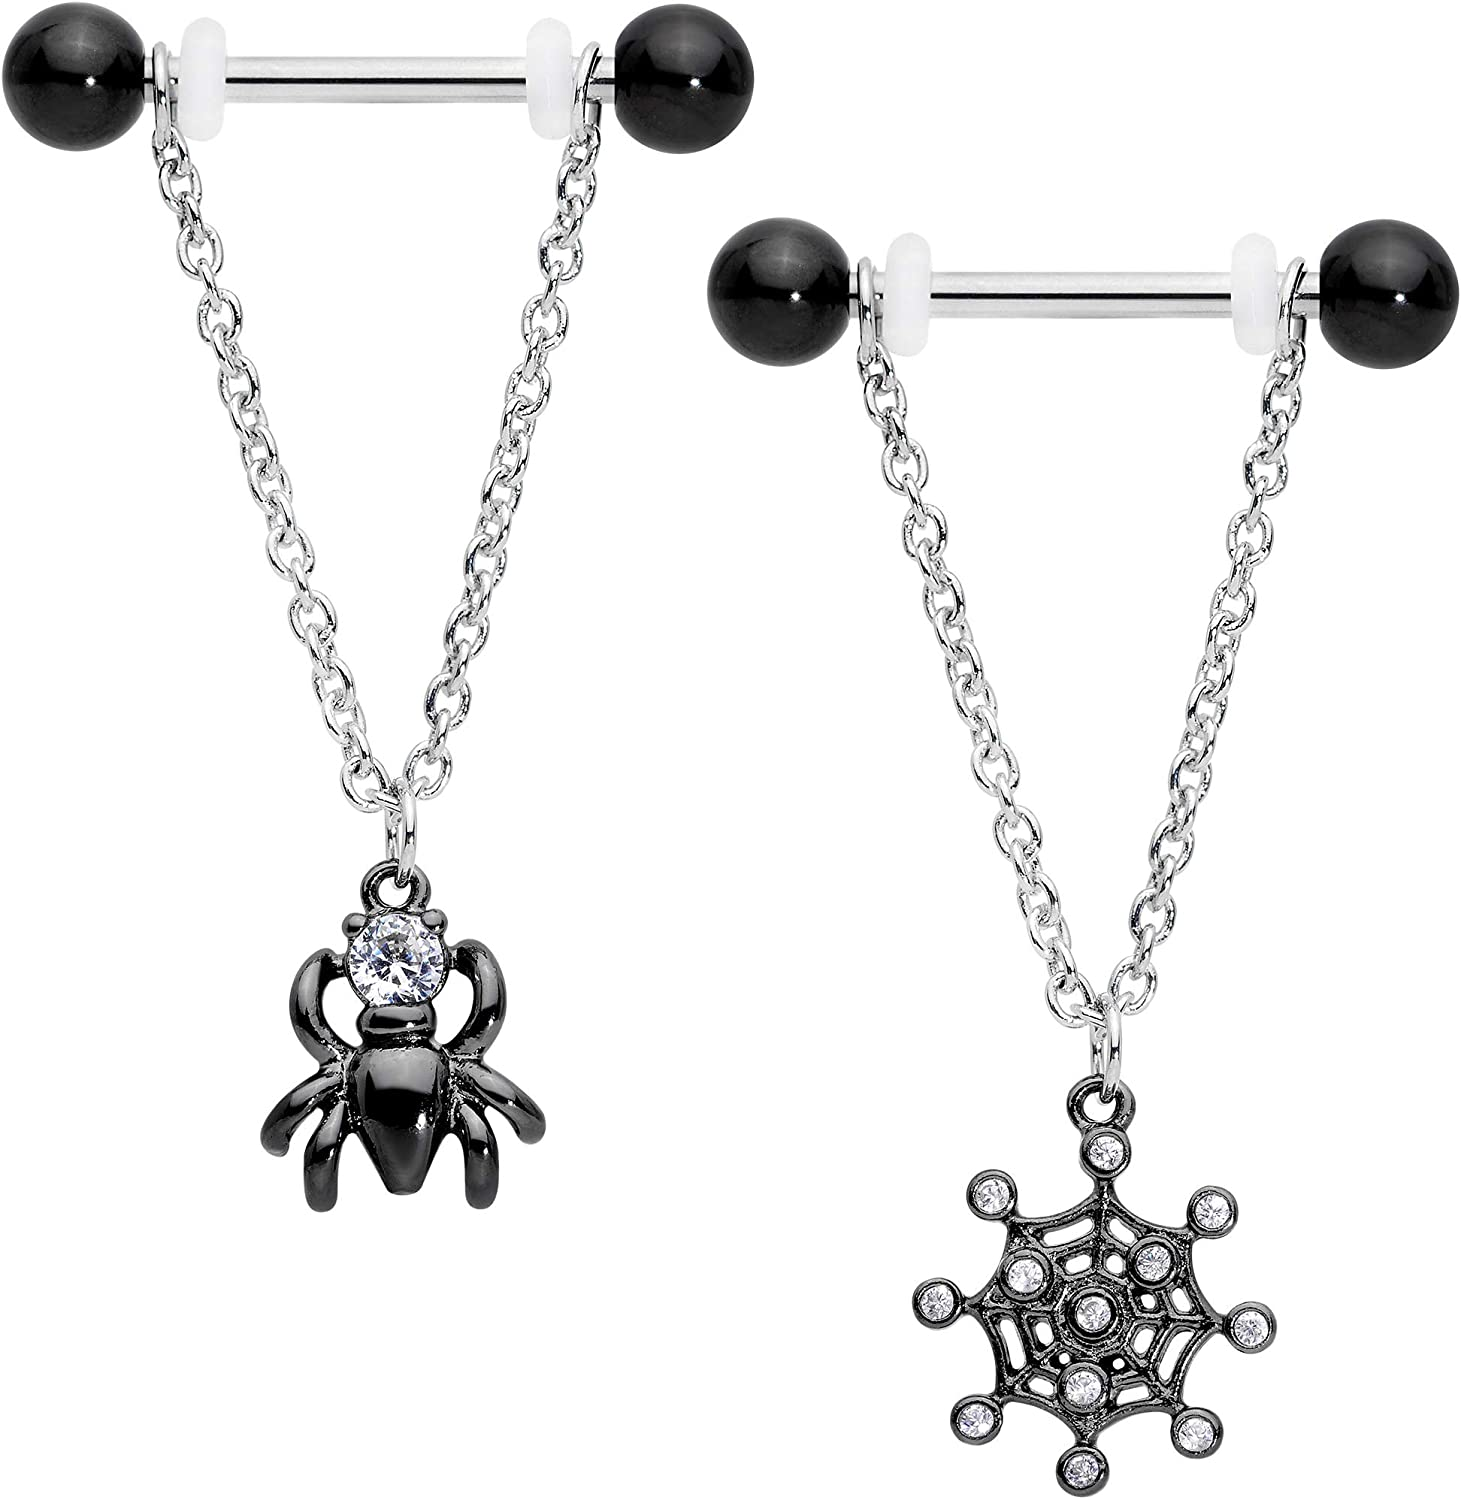 Body Candy 14G Womens Nipplerings Piercing Steel 2Pc Clear Accent Spider Chain Dangle Nipple Ring Set 5/8